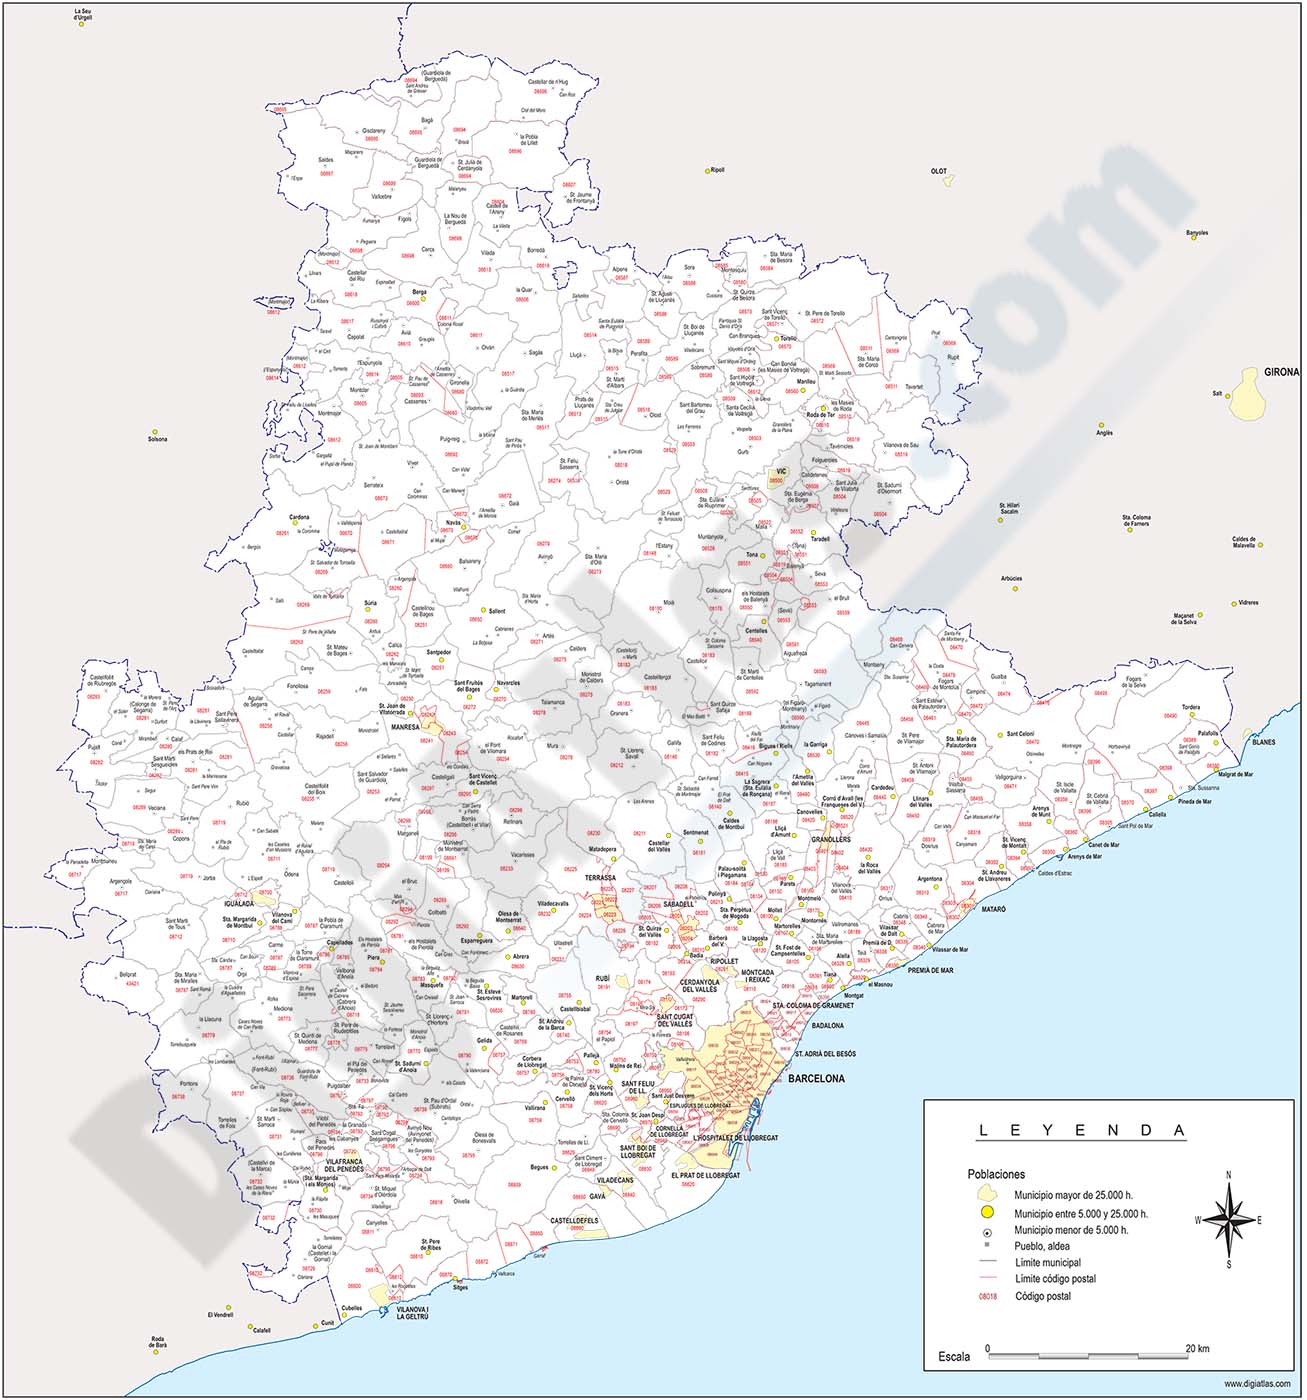 Map of Barcelona province with municipalities and postal codes